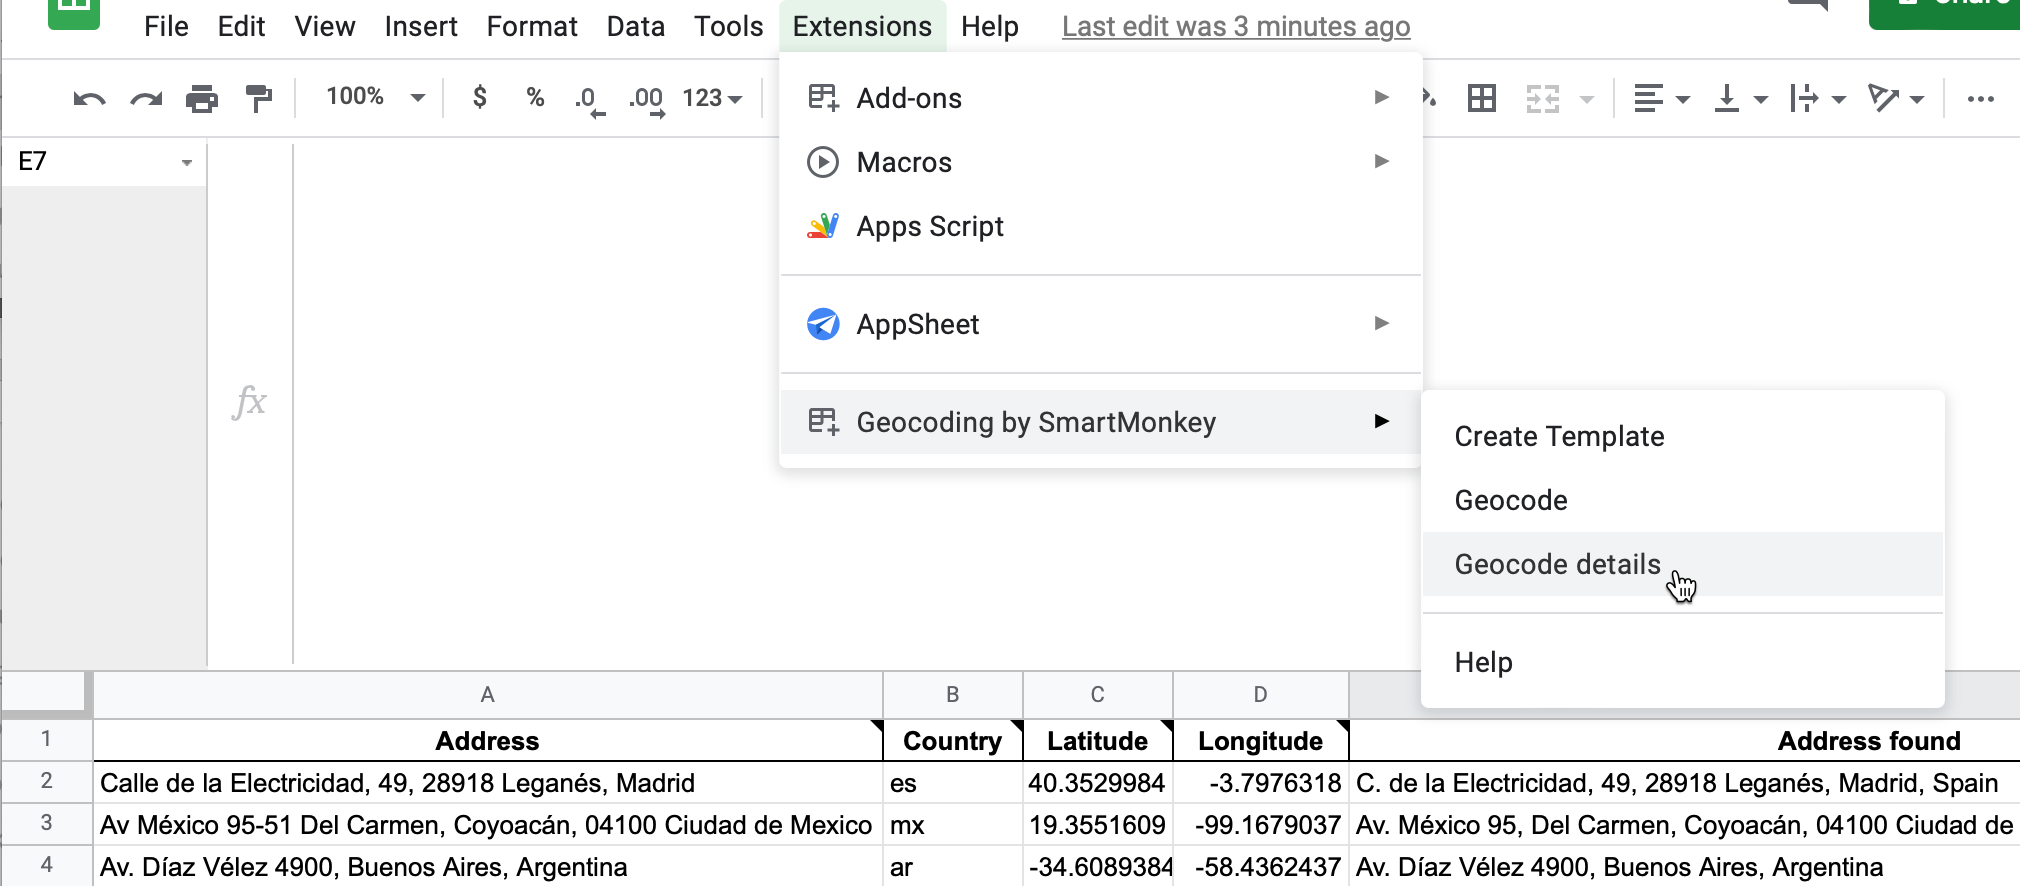 Select Add-ons–Geocoding by SmartMonkey–Geocode Details to display sample data with results for three new columns: Latitude, Longitude, and Address found.